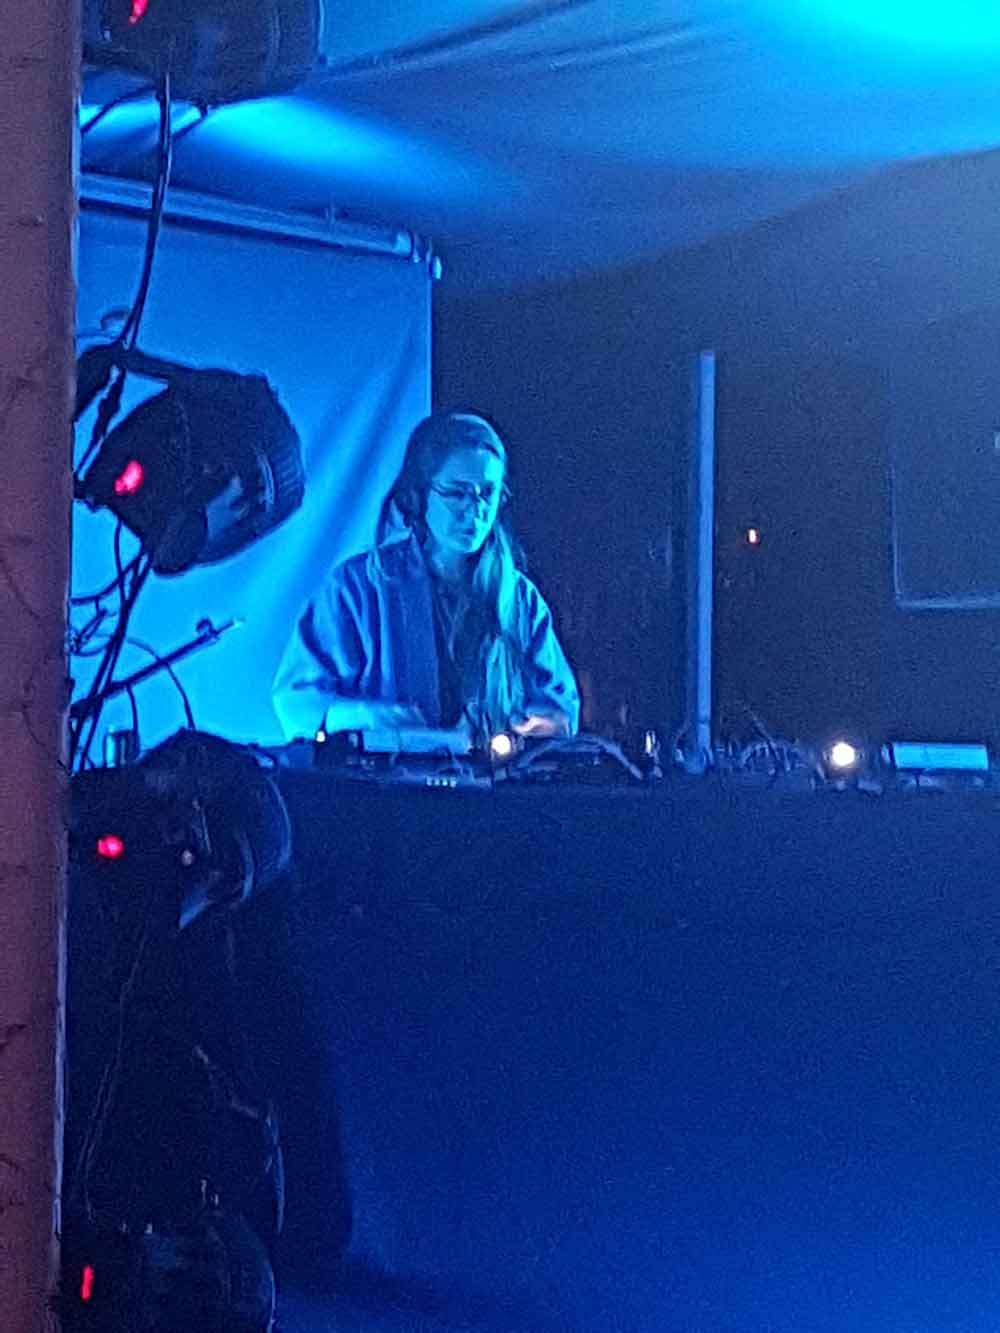 Lena Willikens made us dance heavily